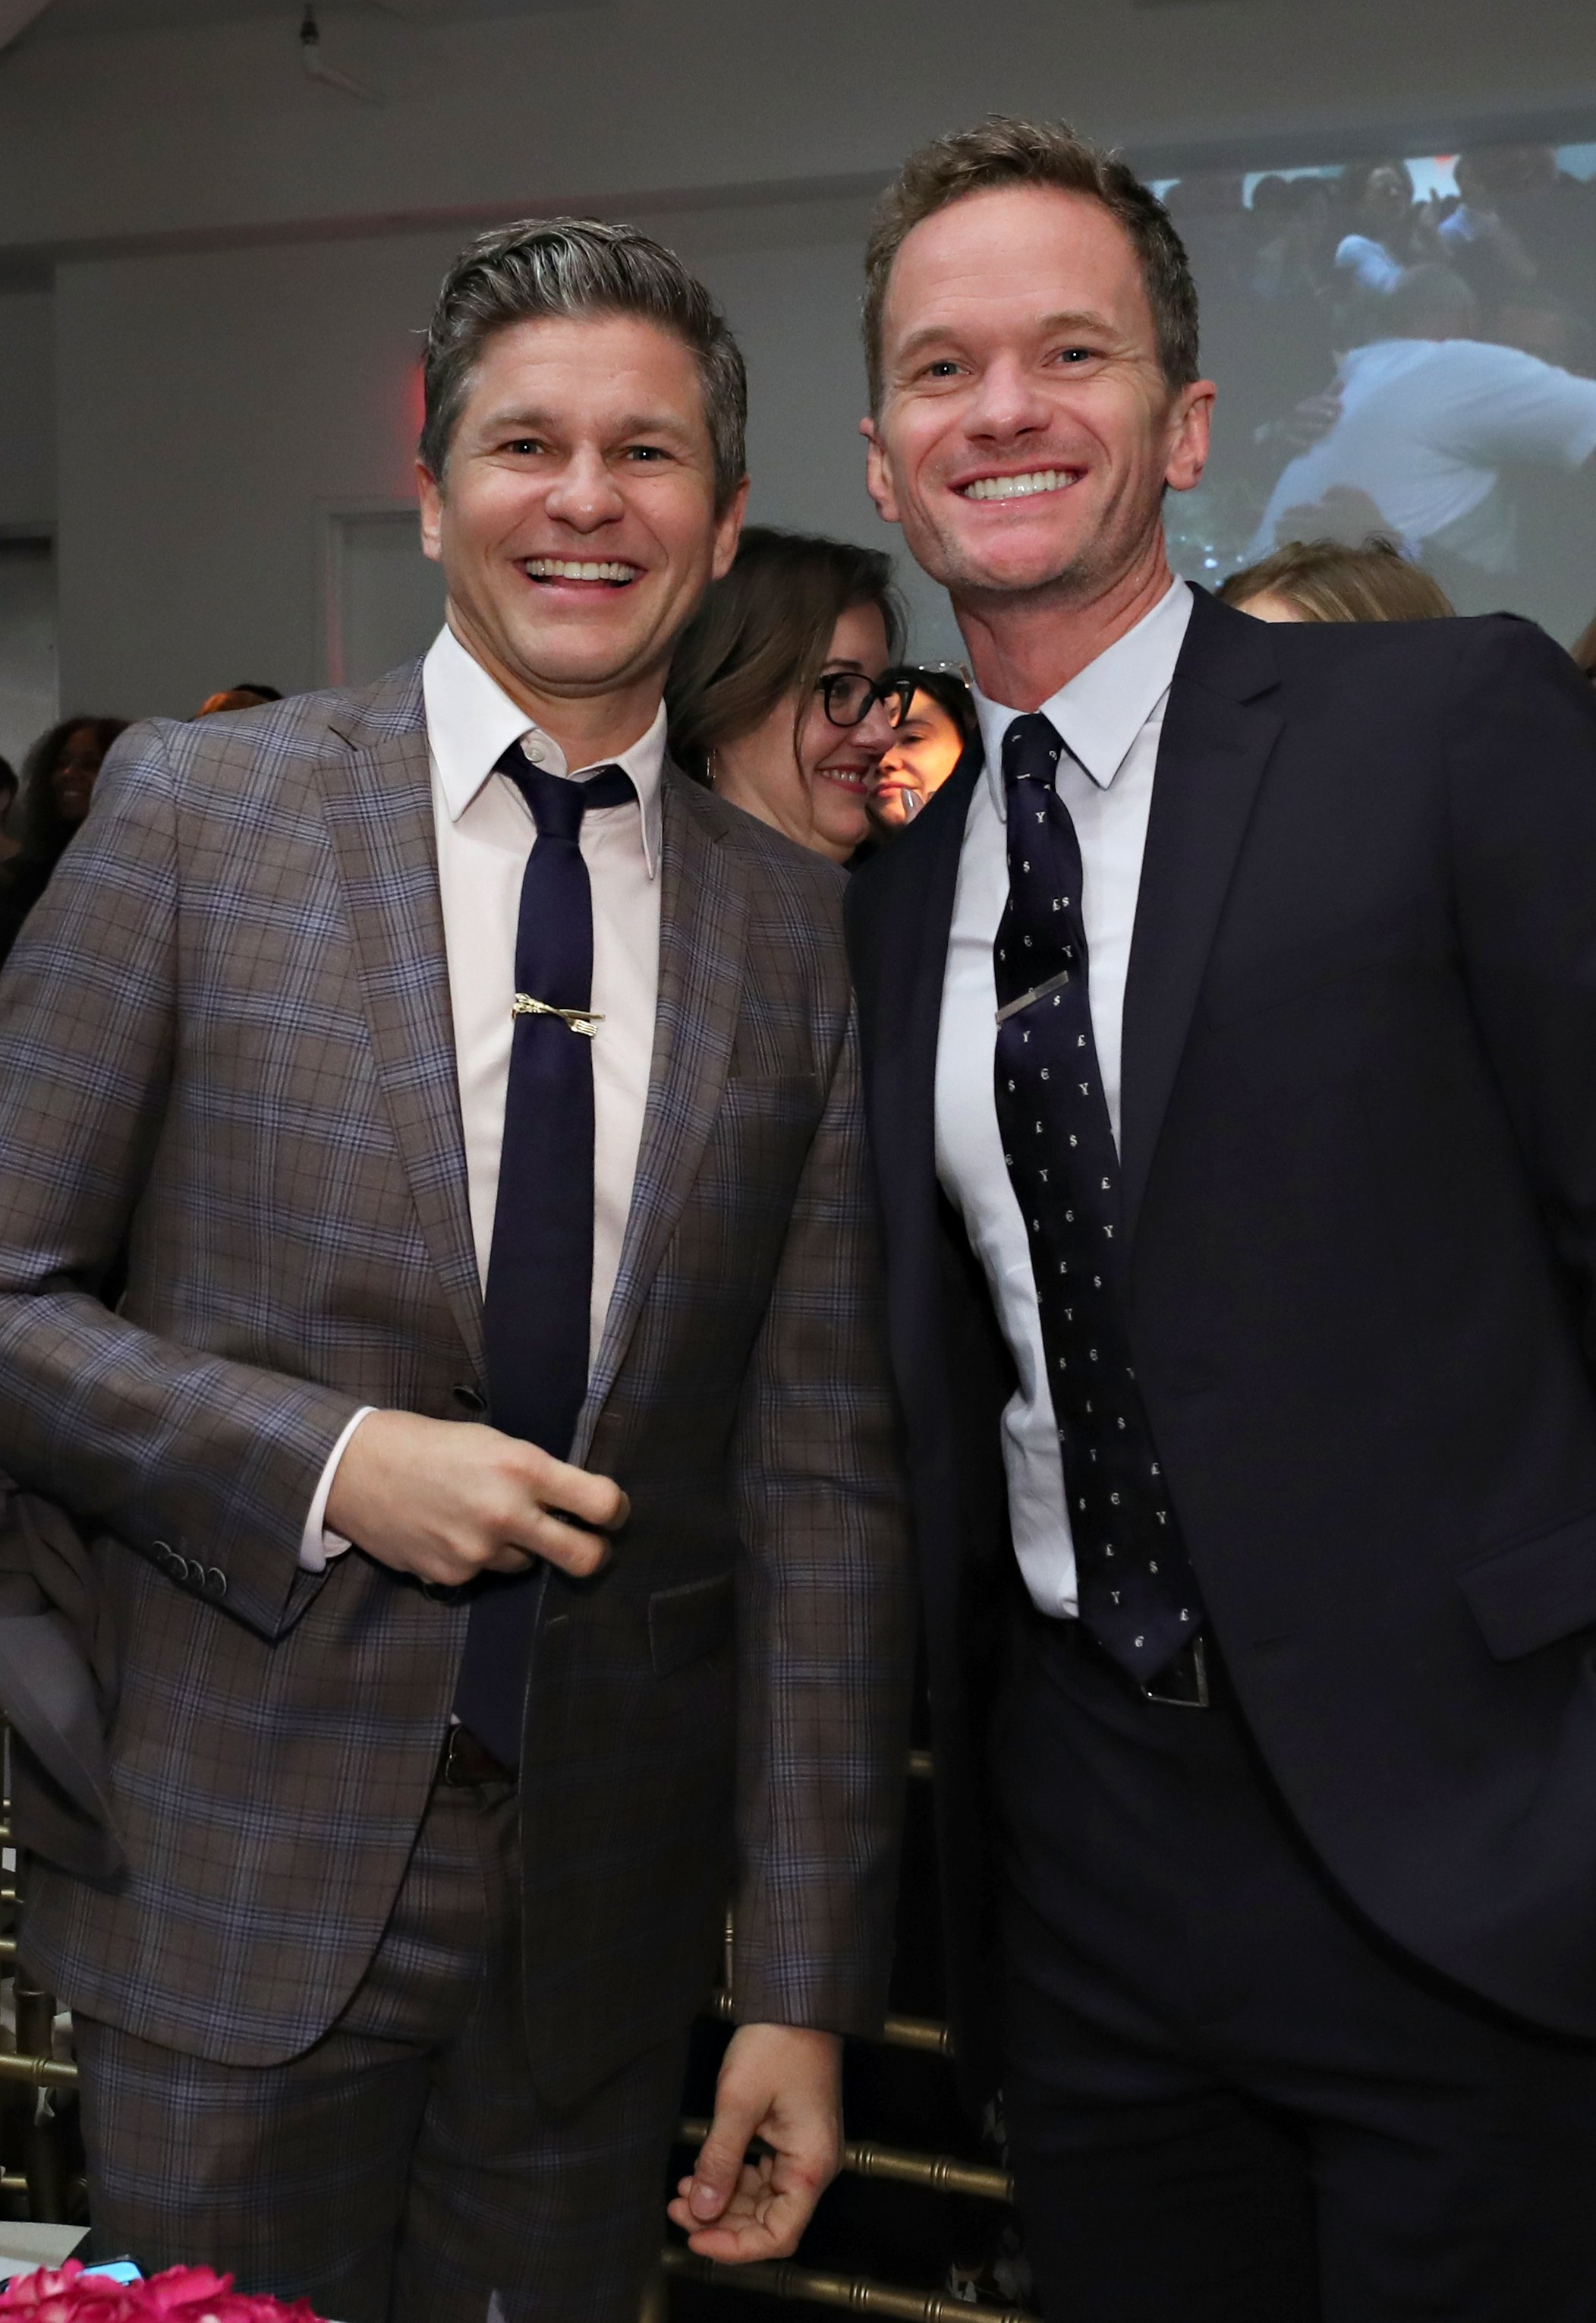 David Burtka and Neil Patrick Harris attend the 2019 Chefs For Kids' Cancer at Metropolitan Pavilion Metro West on March 12, 2019, in New York City. | Source: Getty Images.